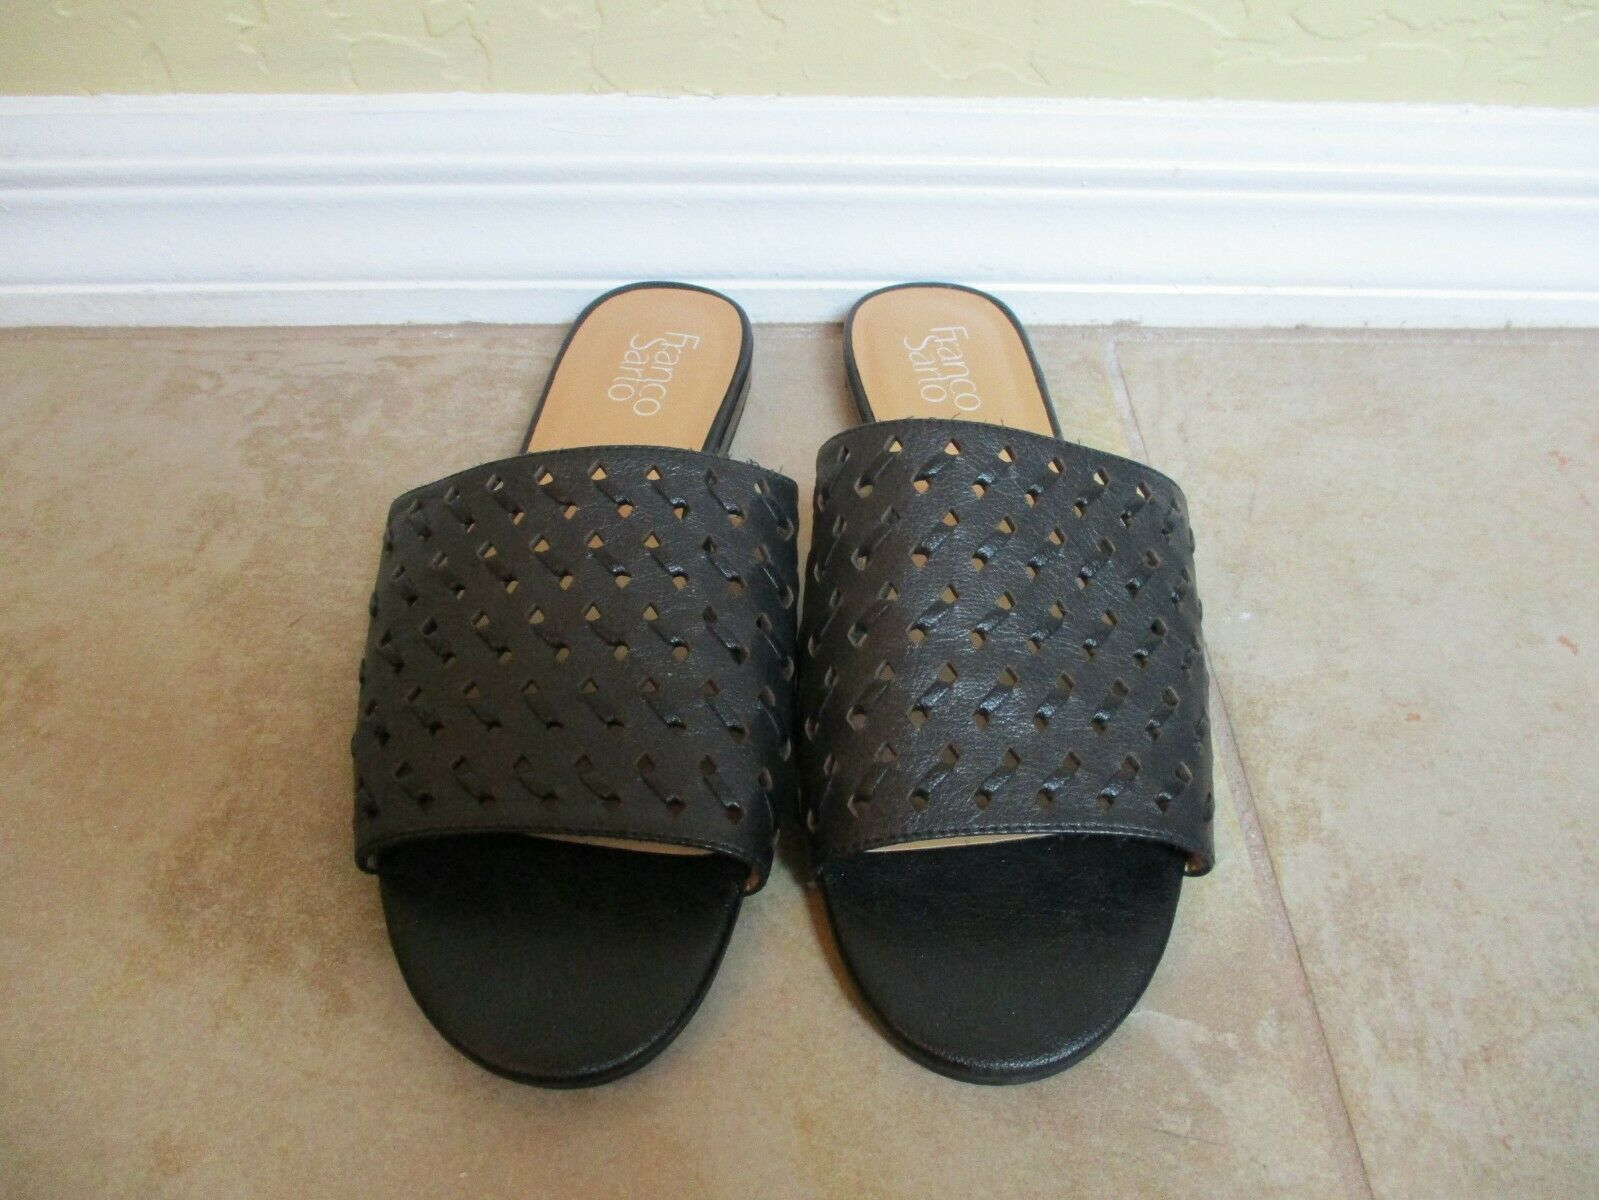 Franco Sarta Black Perforated Leather Mules For Women Size 9 Eur 39.5 image 2